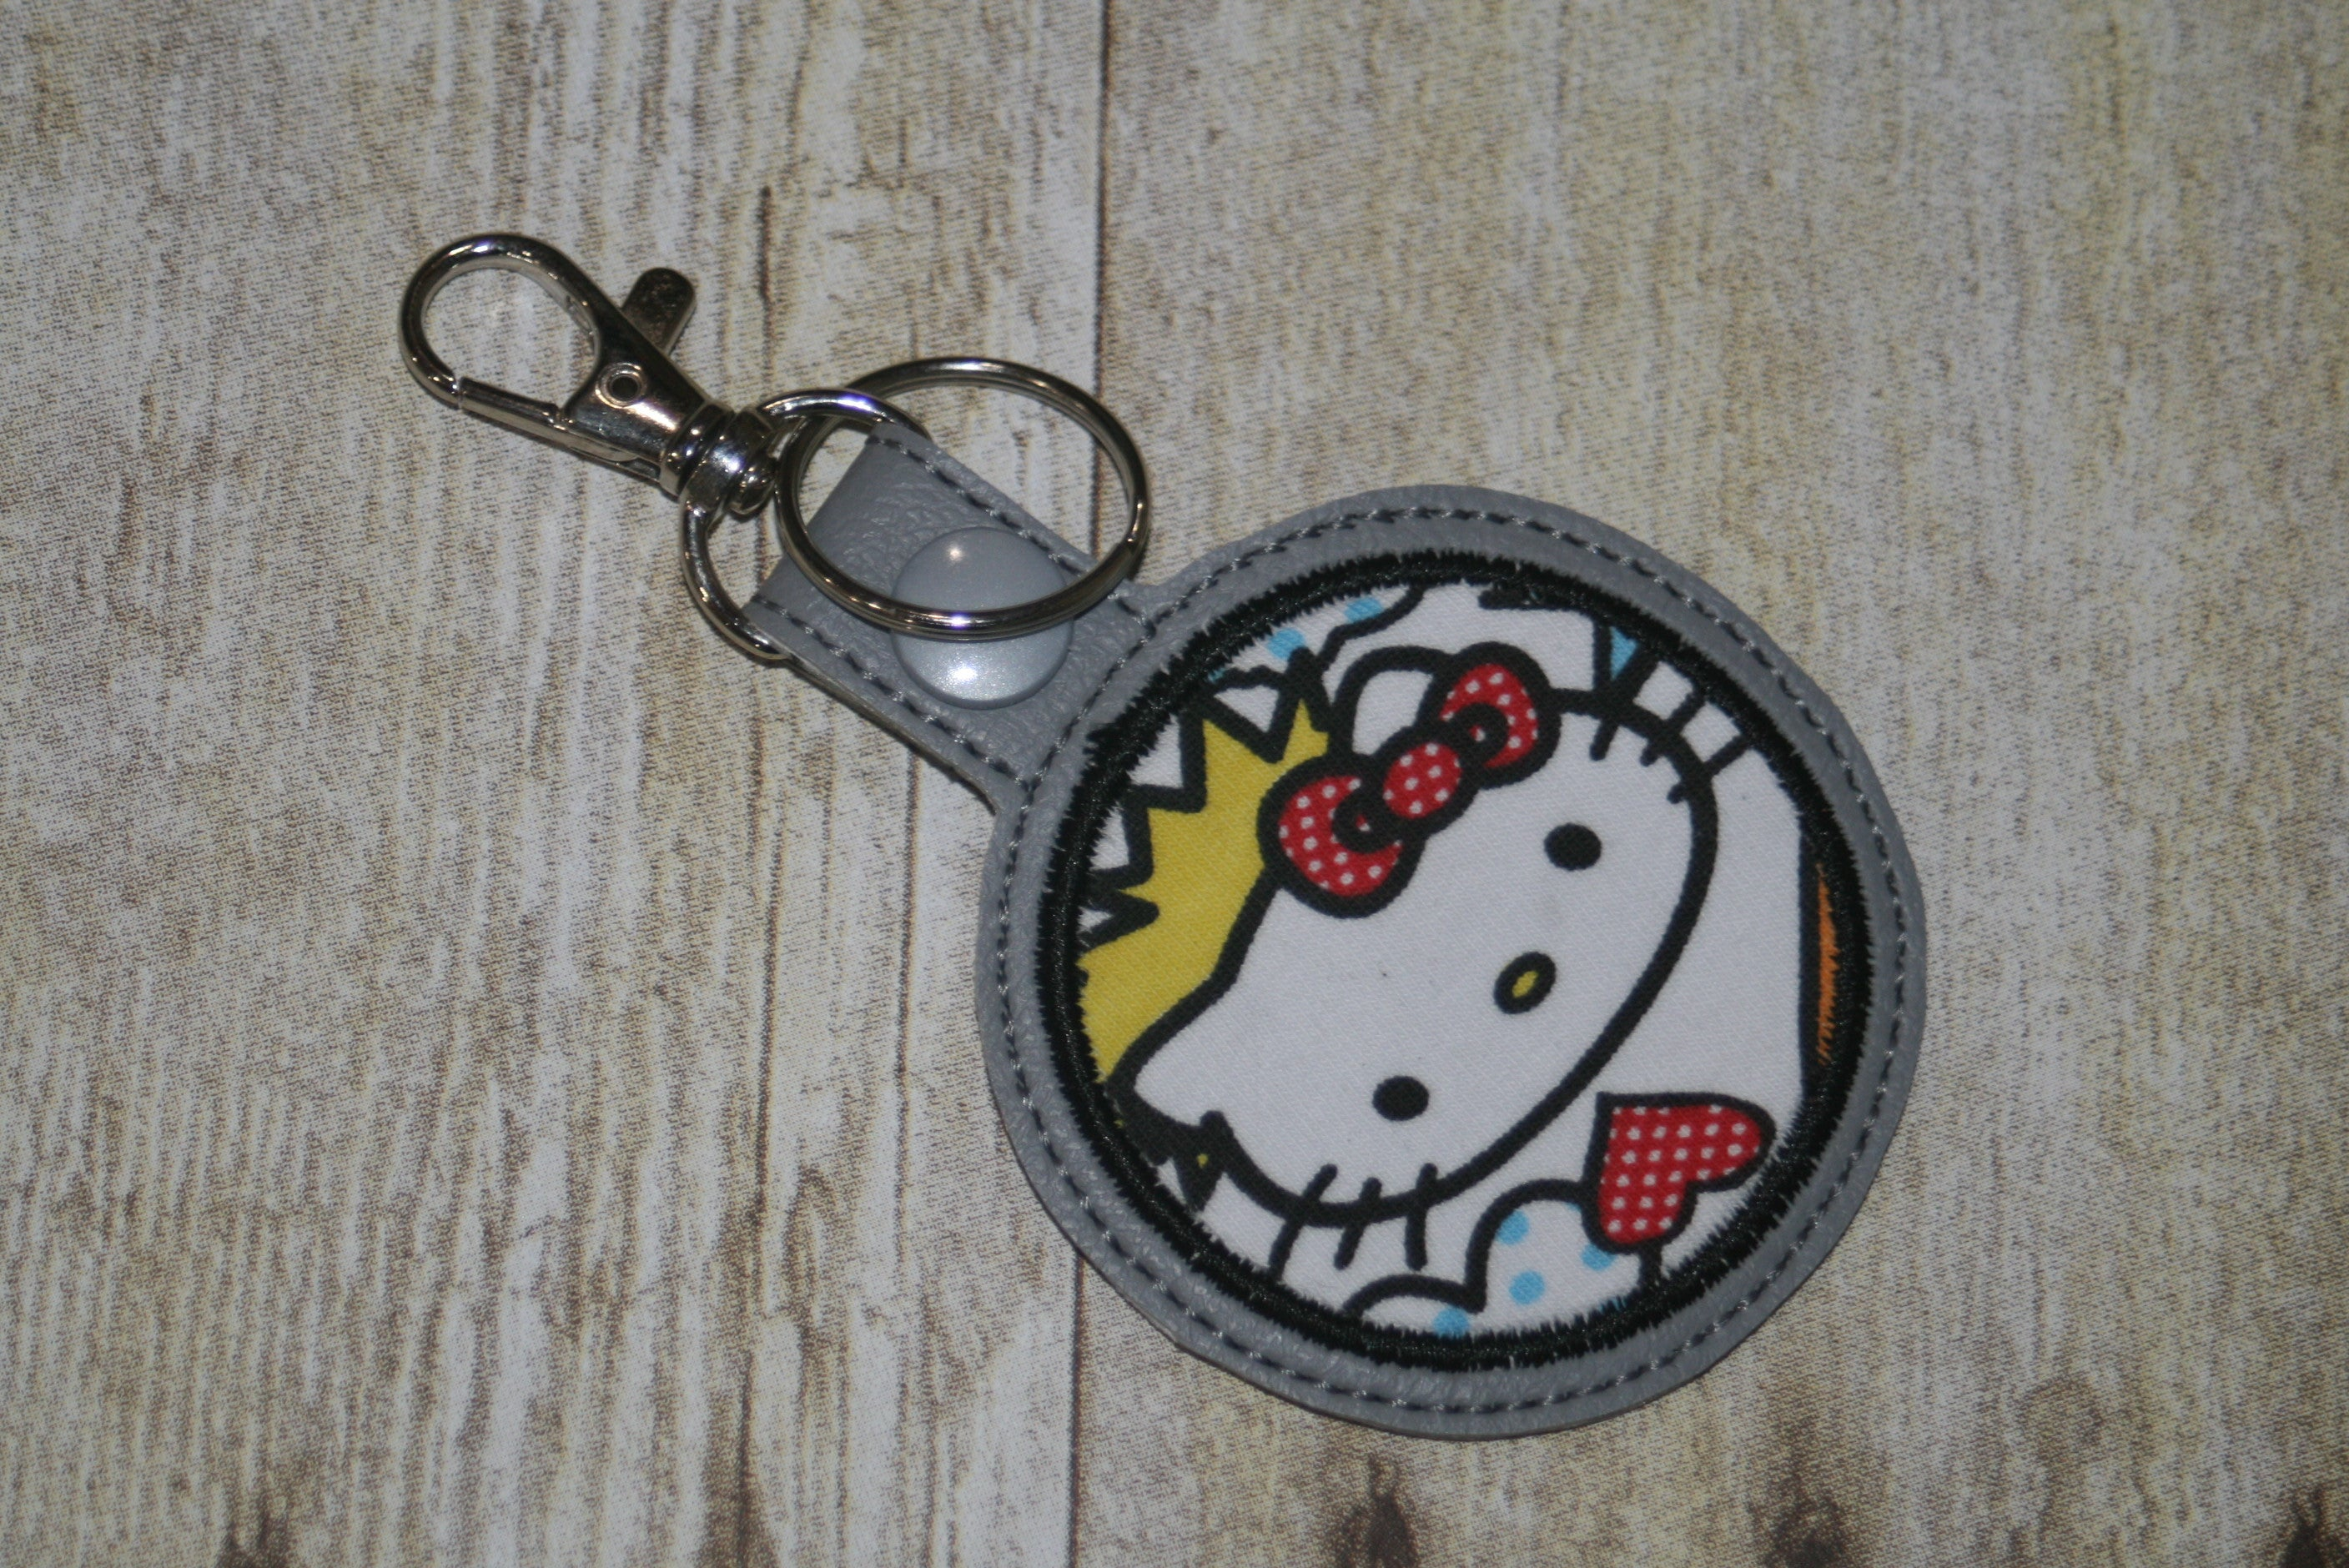 Round Key Chains - Group 2